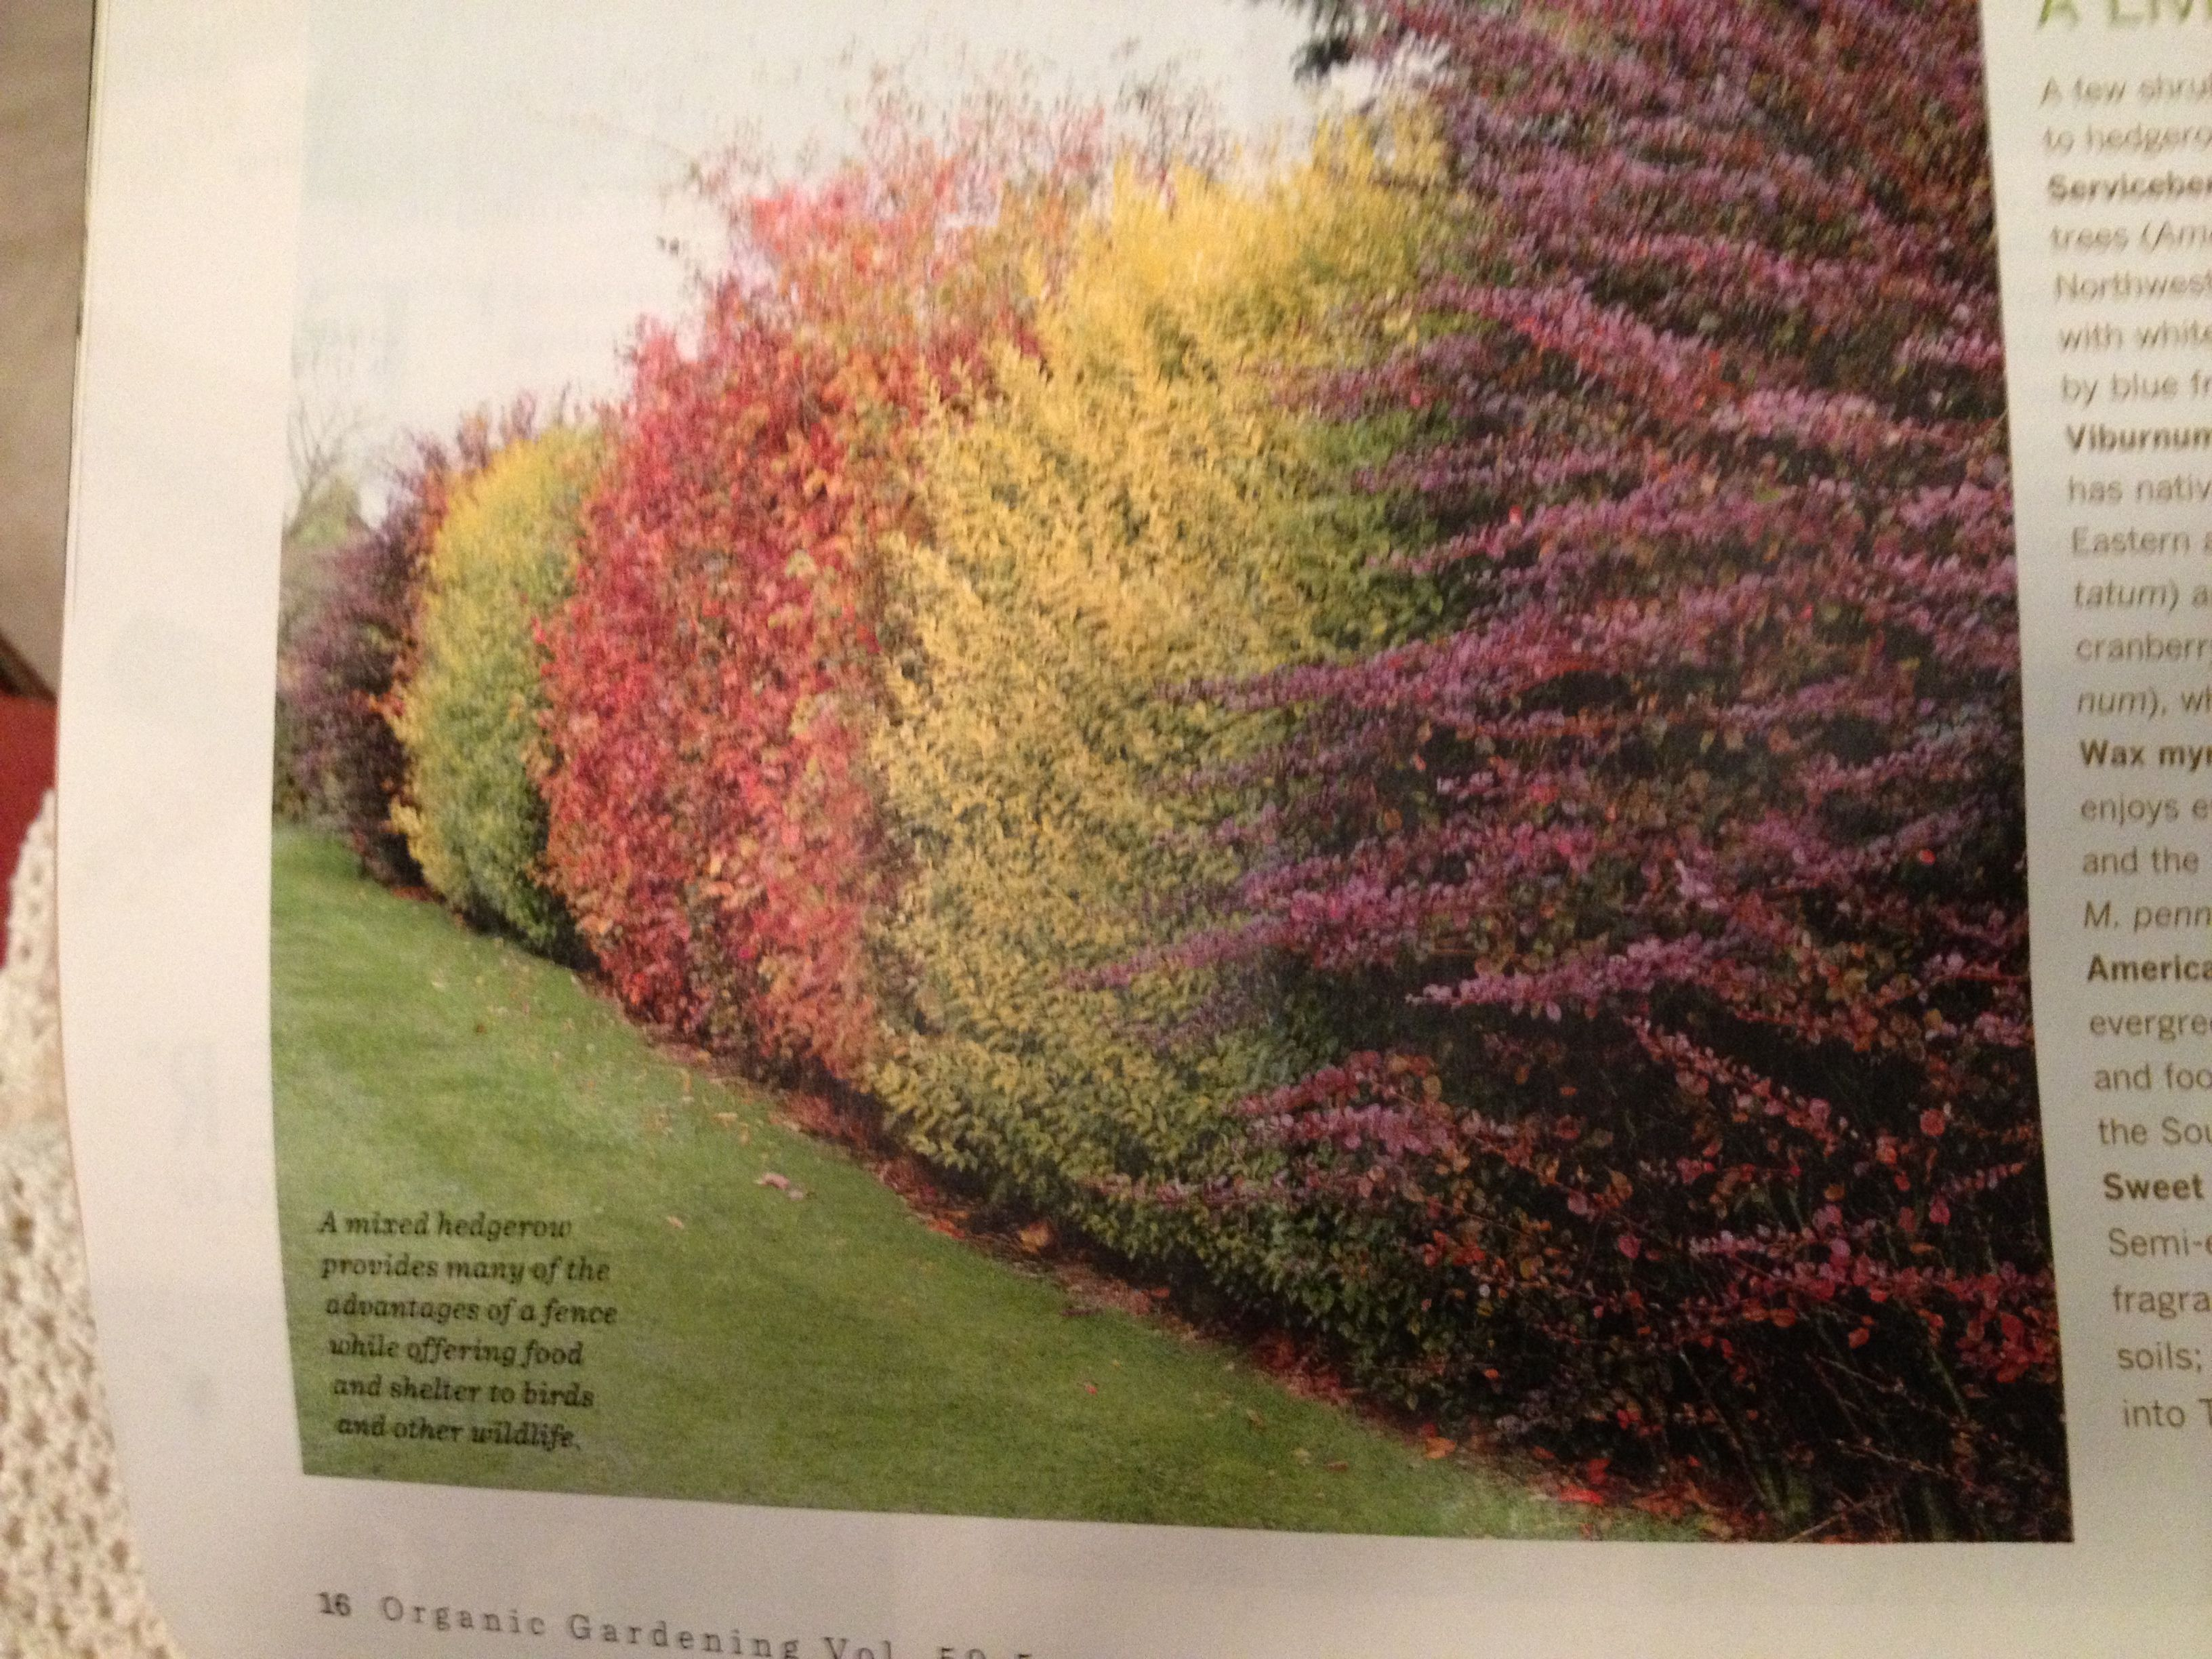 Mixed hedgerow--serviceberries viburnums wax myrtles American holly ...